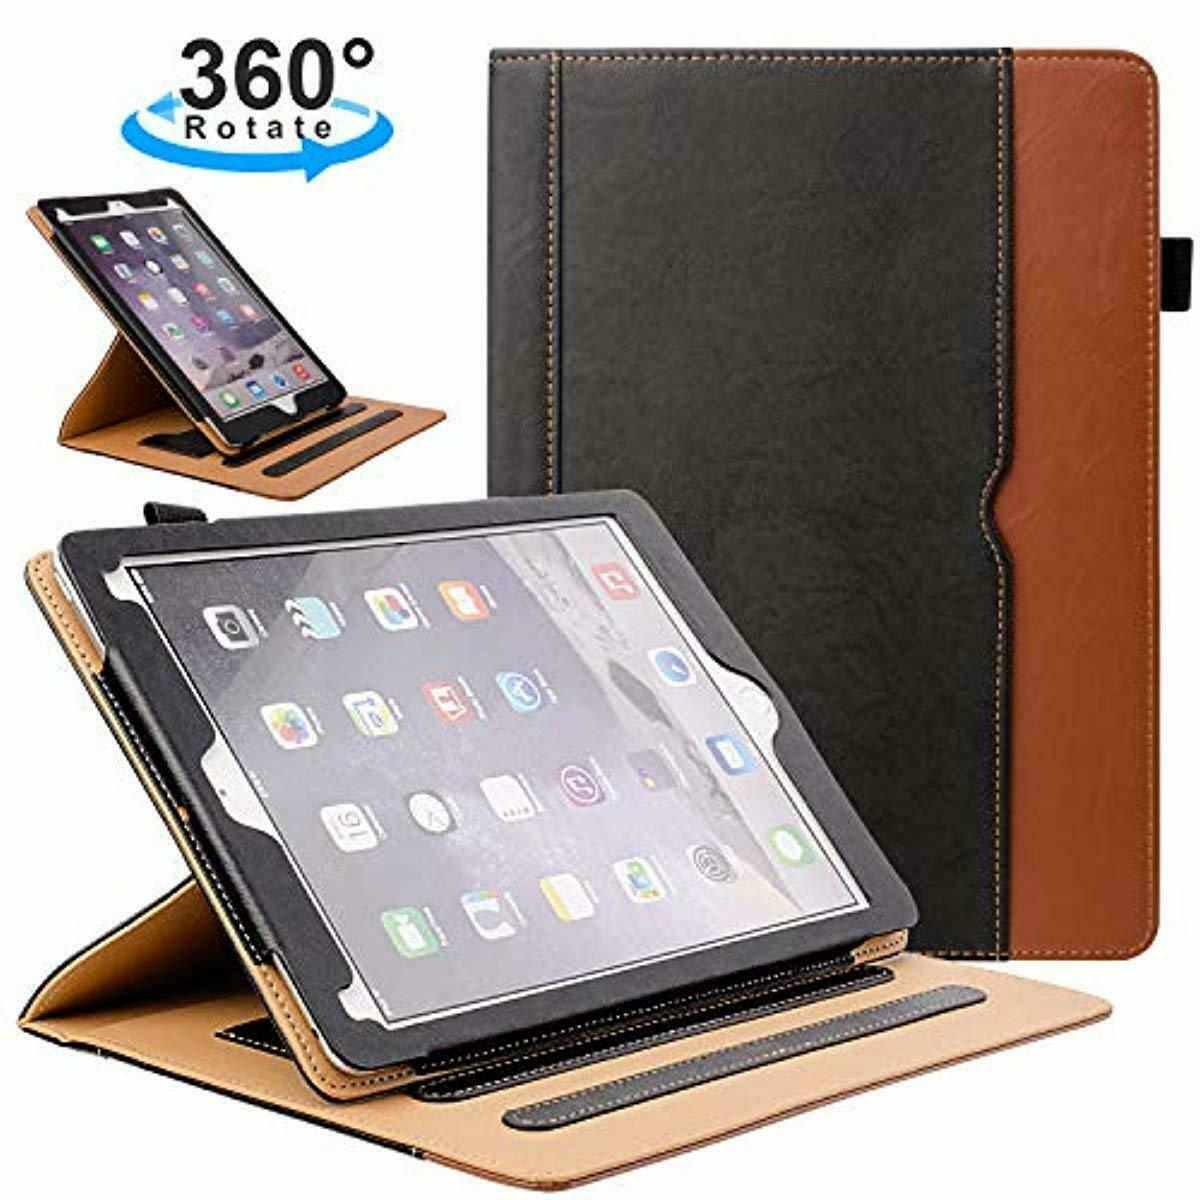 ZoneFoker New iPad Air 3 10.5 inch 2019 Tablet Leather Case,